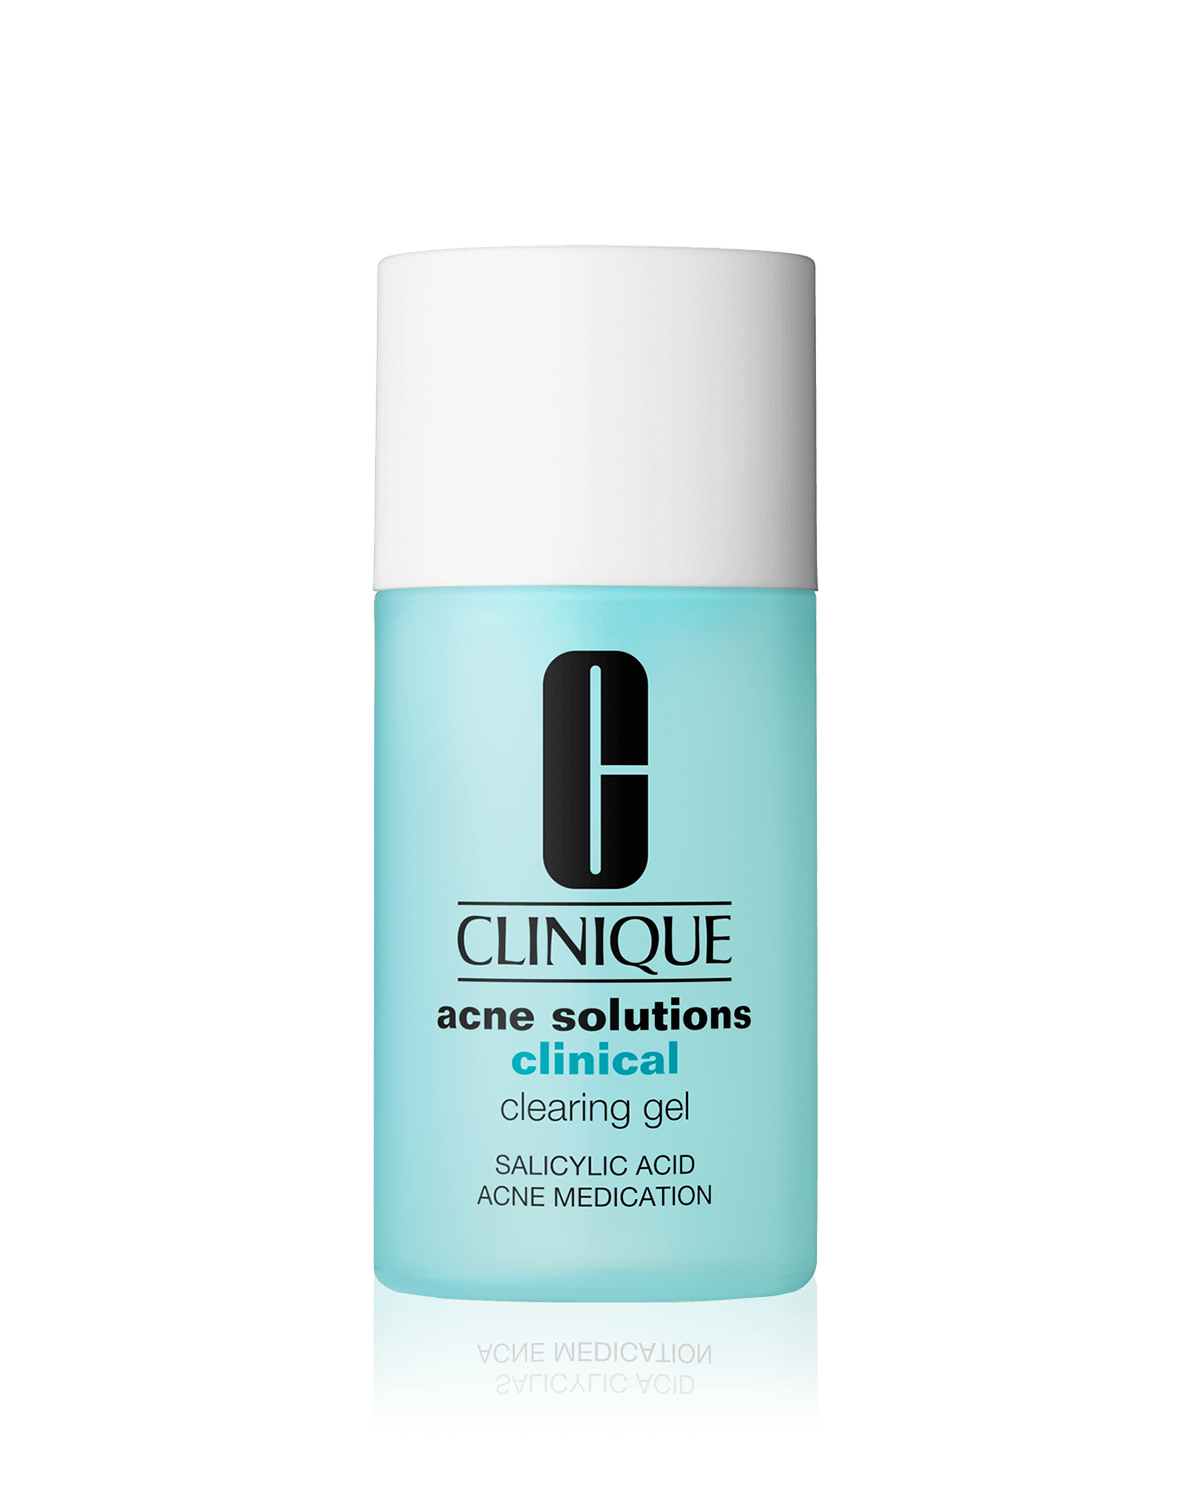 Acne Solutions™ Clinical Clearing Gel